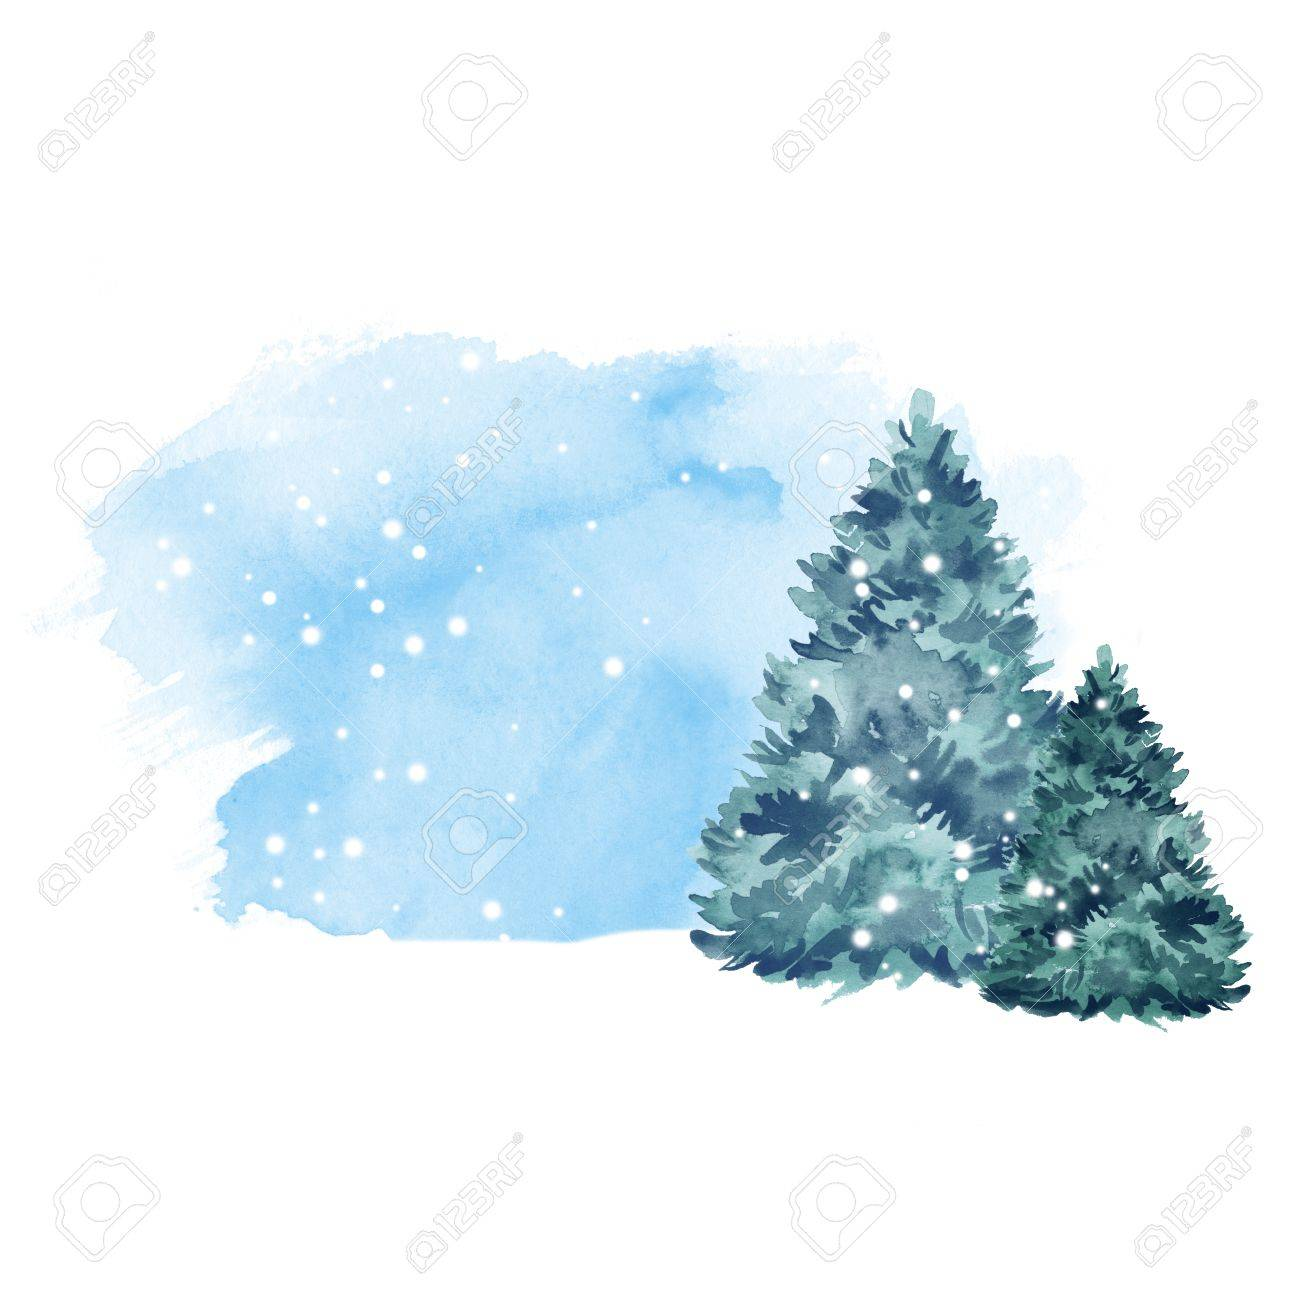 Green fir tree and snow. Winter background. Watercolor painting 2 - 64237595